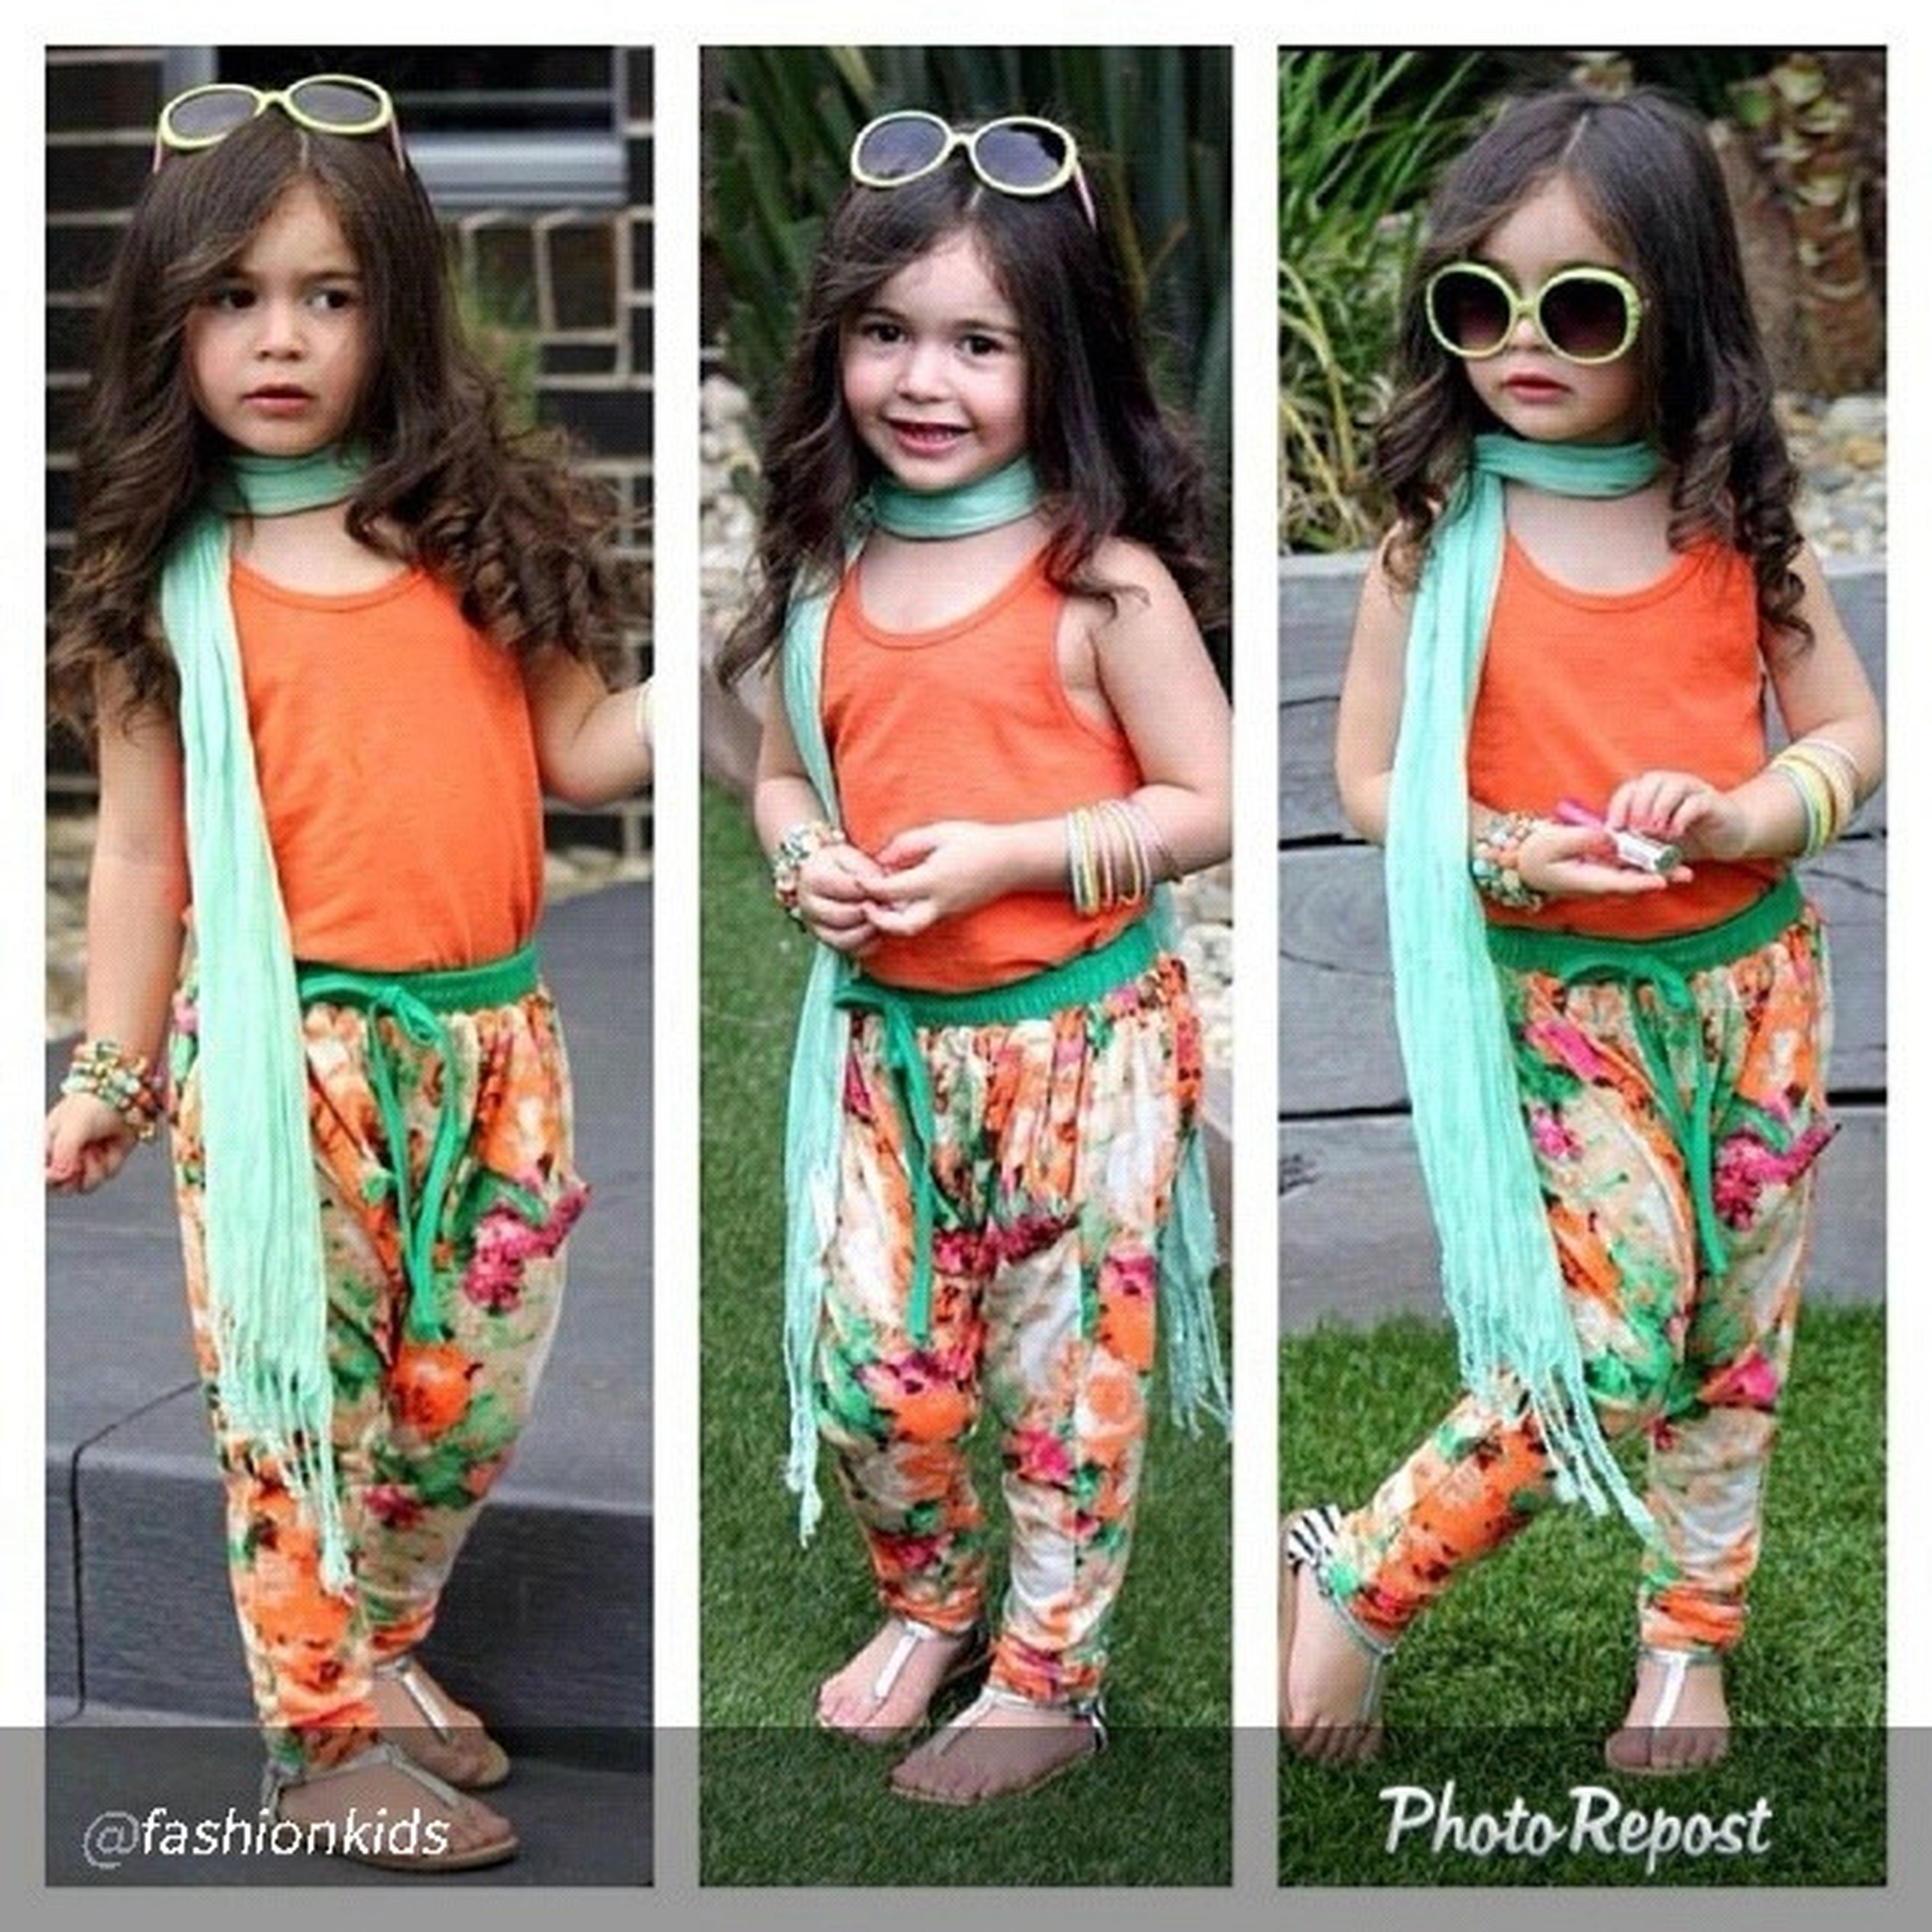 CRAZY!!? I so love the outfit and cant wait my little princess to be like her. ???????? Fashionbaby Fashionprincess Soon LikeMother likedaughter check ?